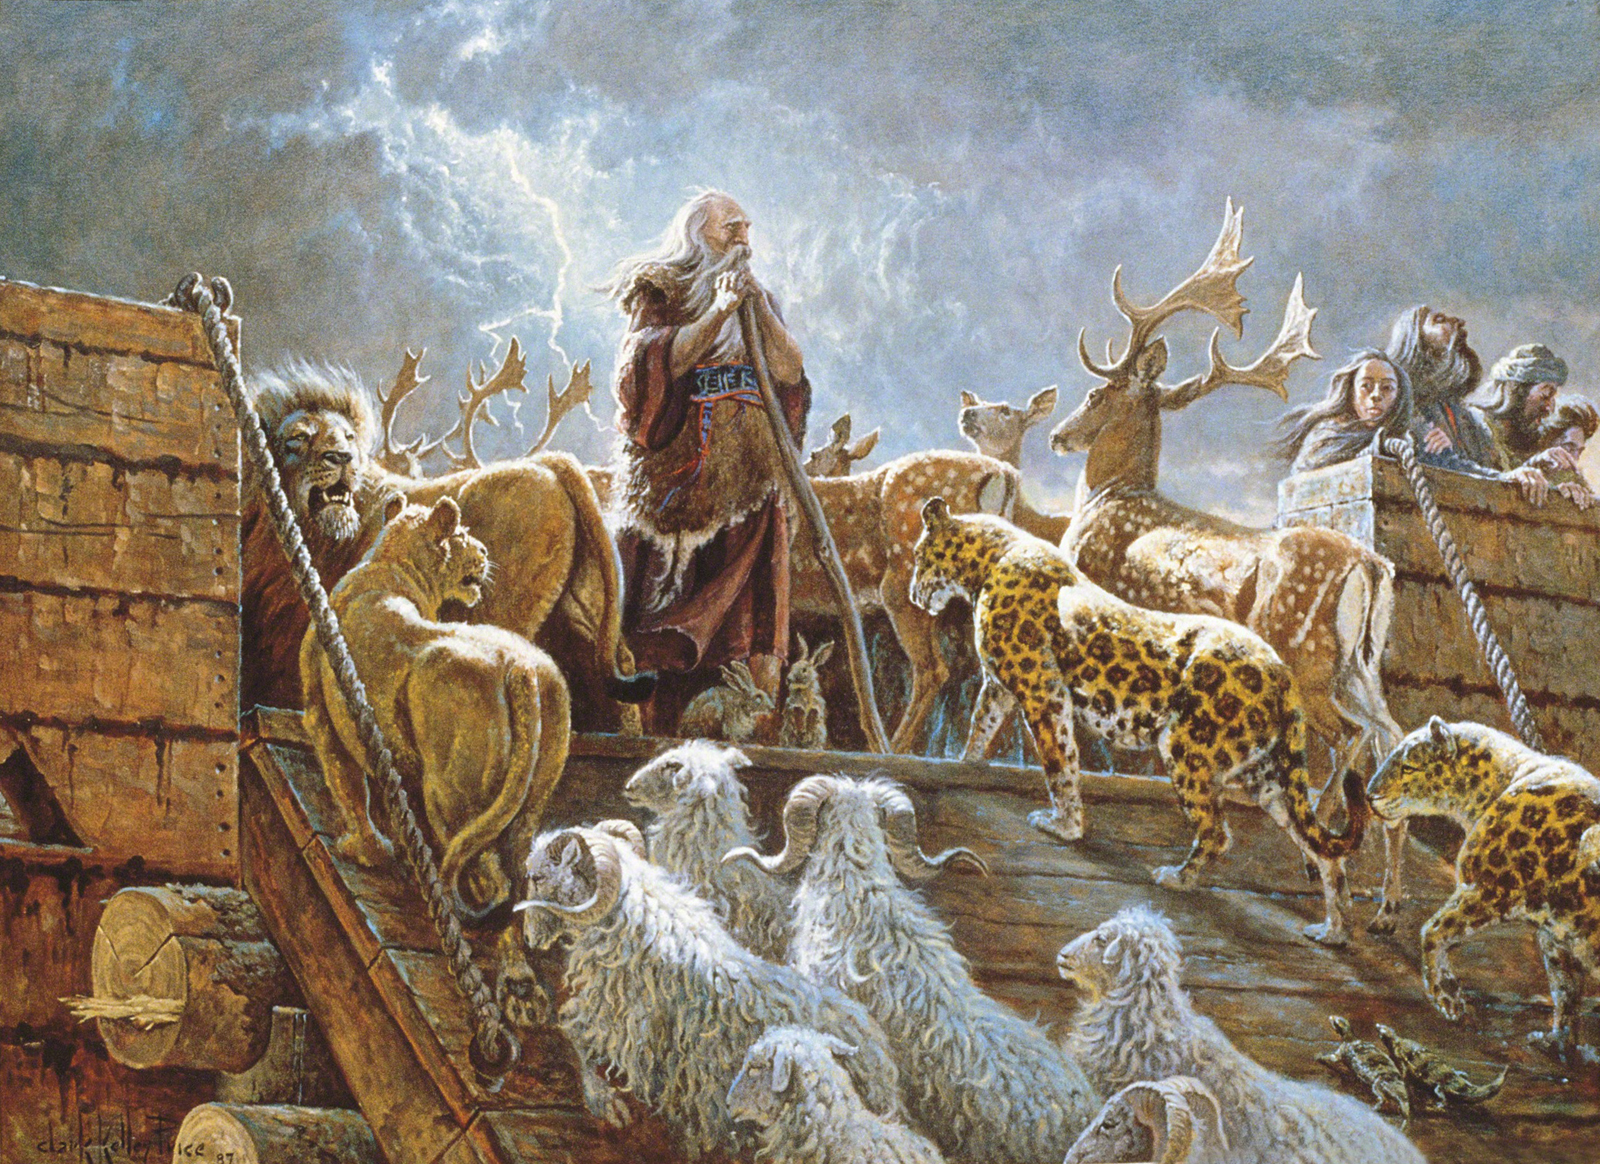 Noah And The Ark With Animals The Lord Fulfilleth All His Noah S Ark While Animals Are Going To The Ark Drawing With Color